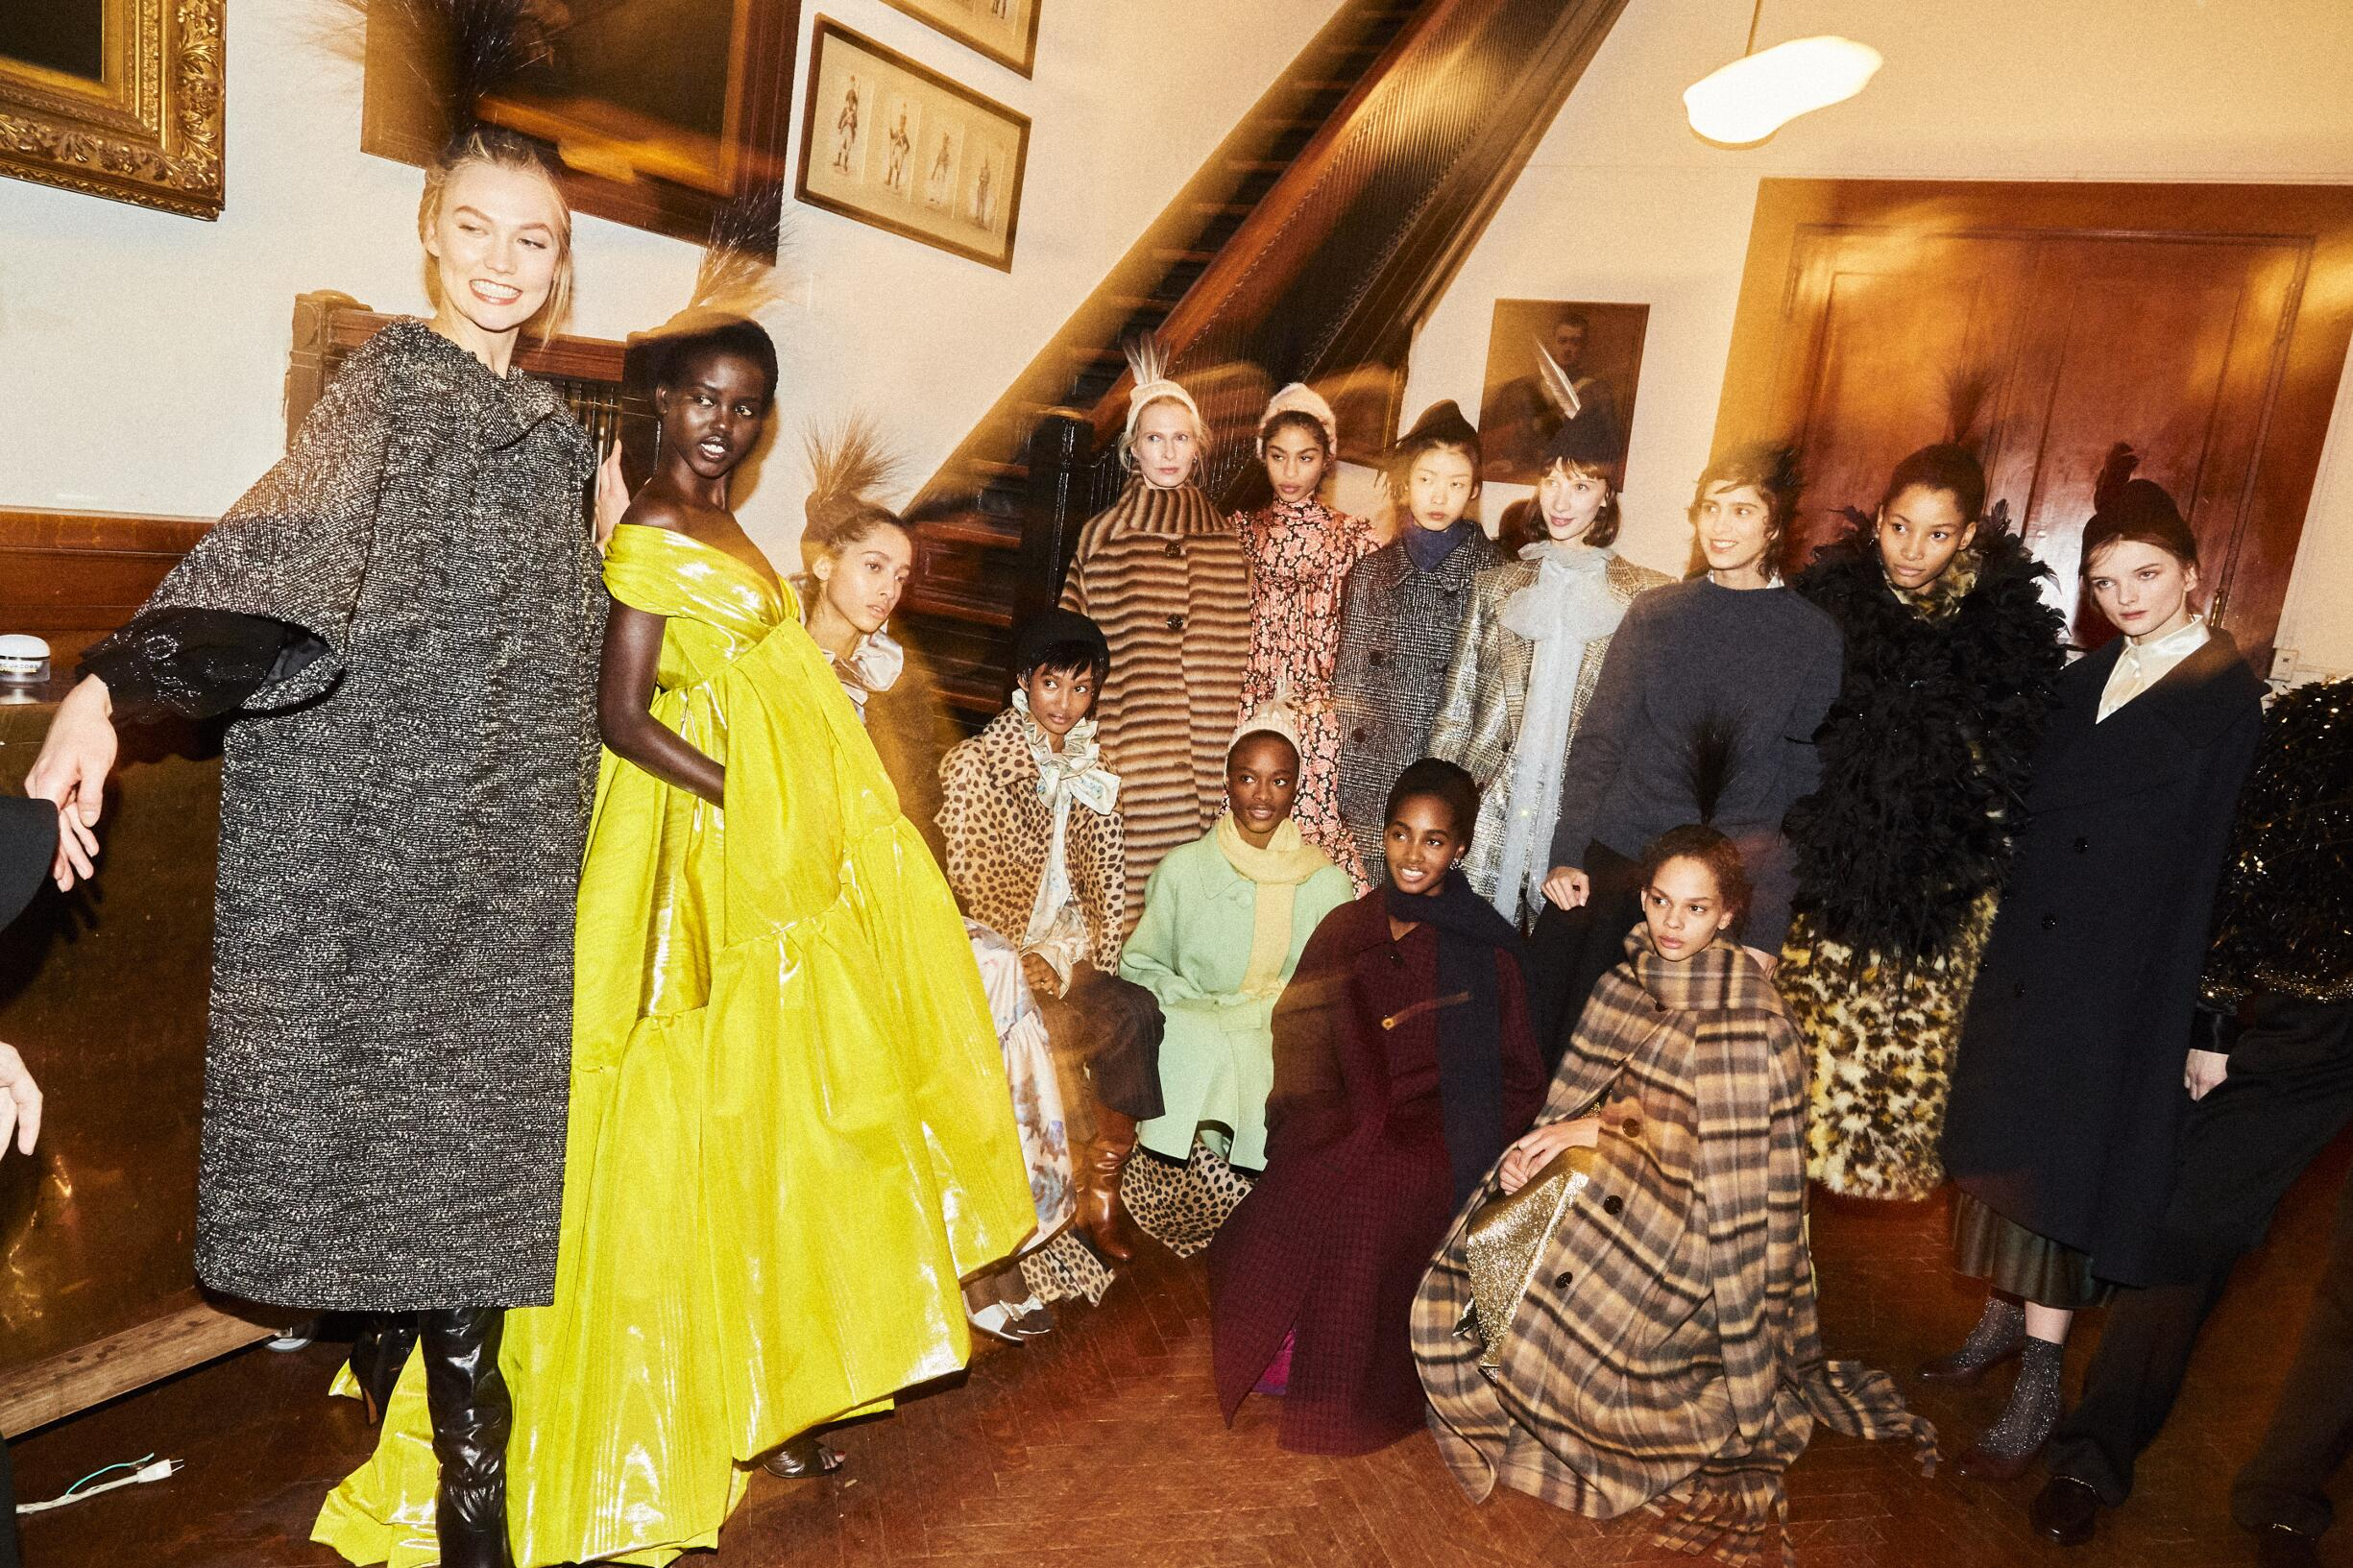 Backstage Marc Jacobs Models 2019